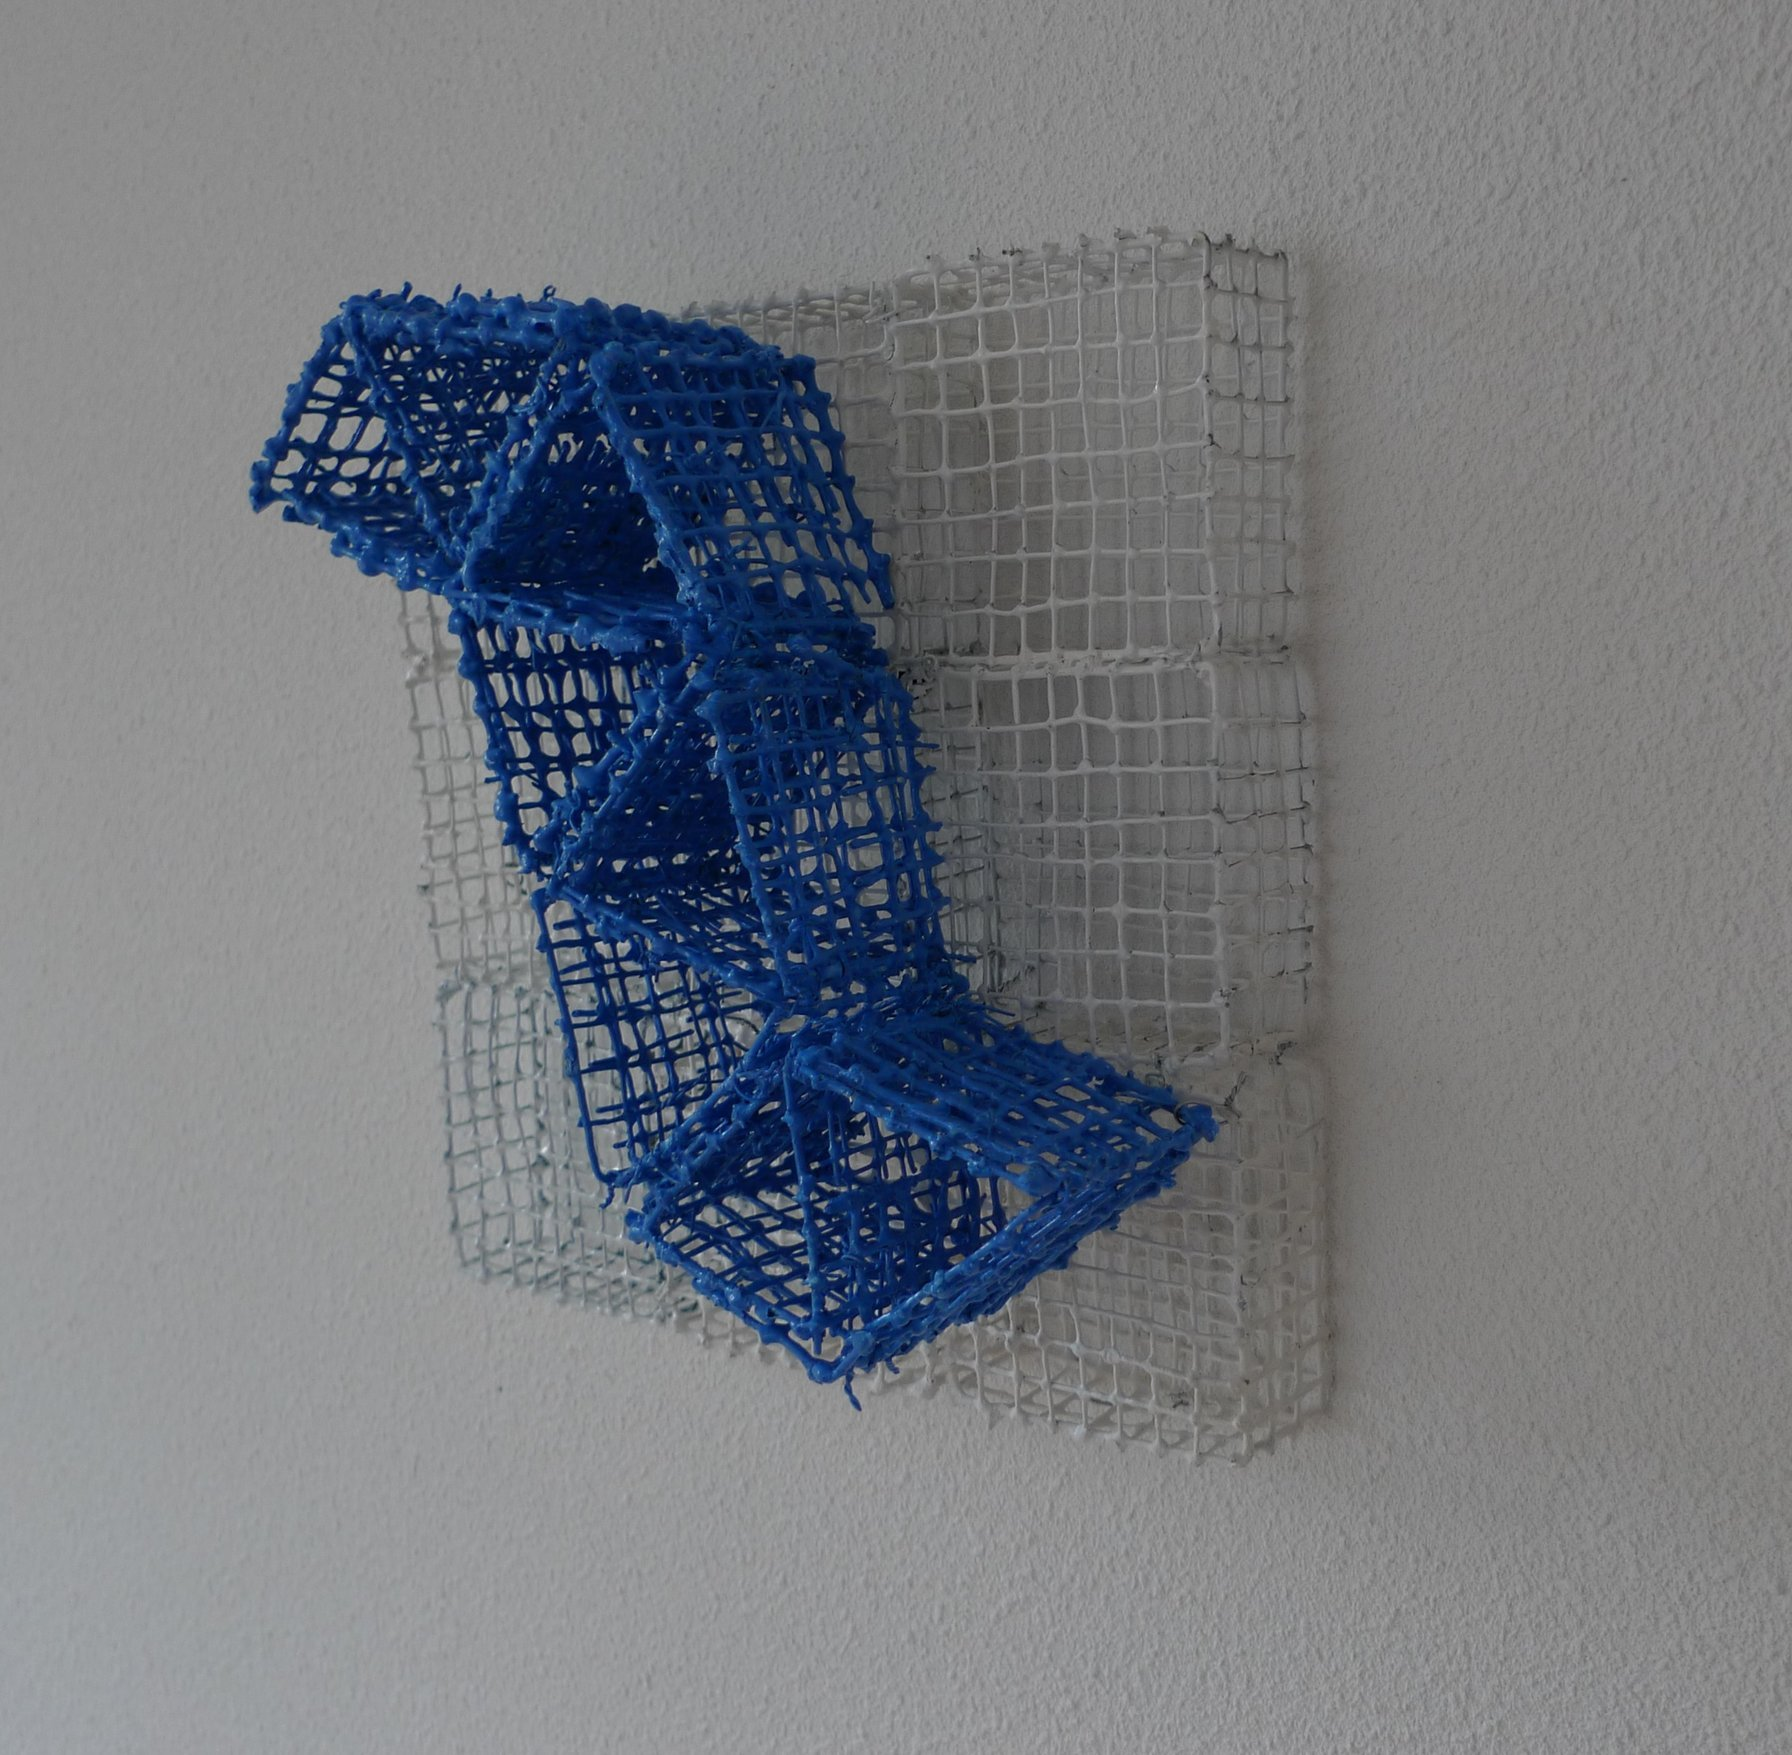 ExpansionBlue, 2016 (side sight)